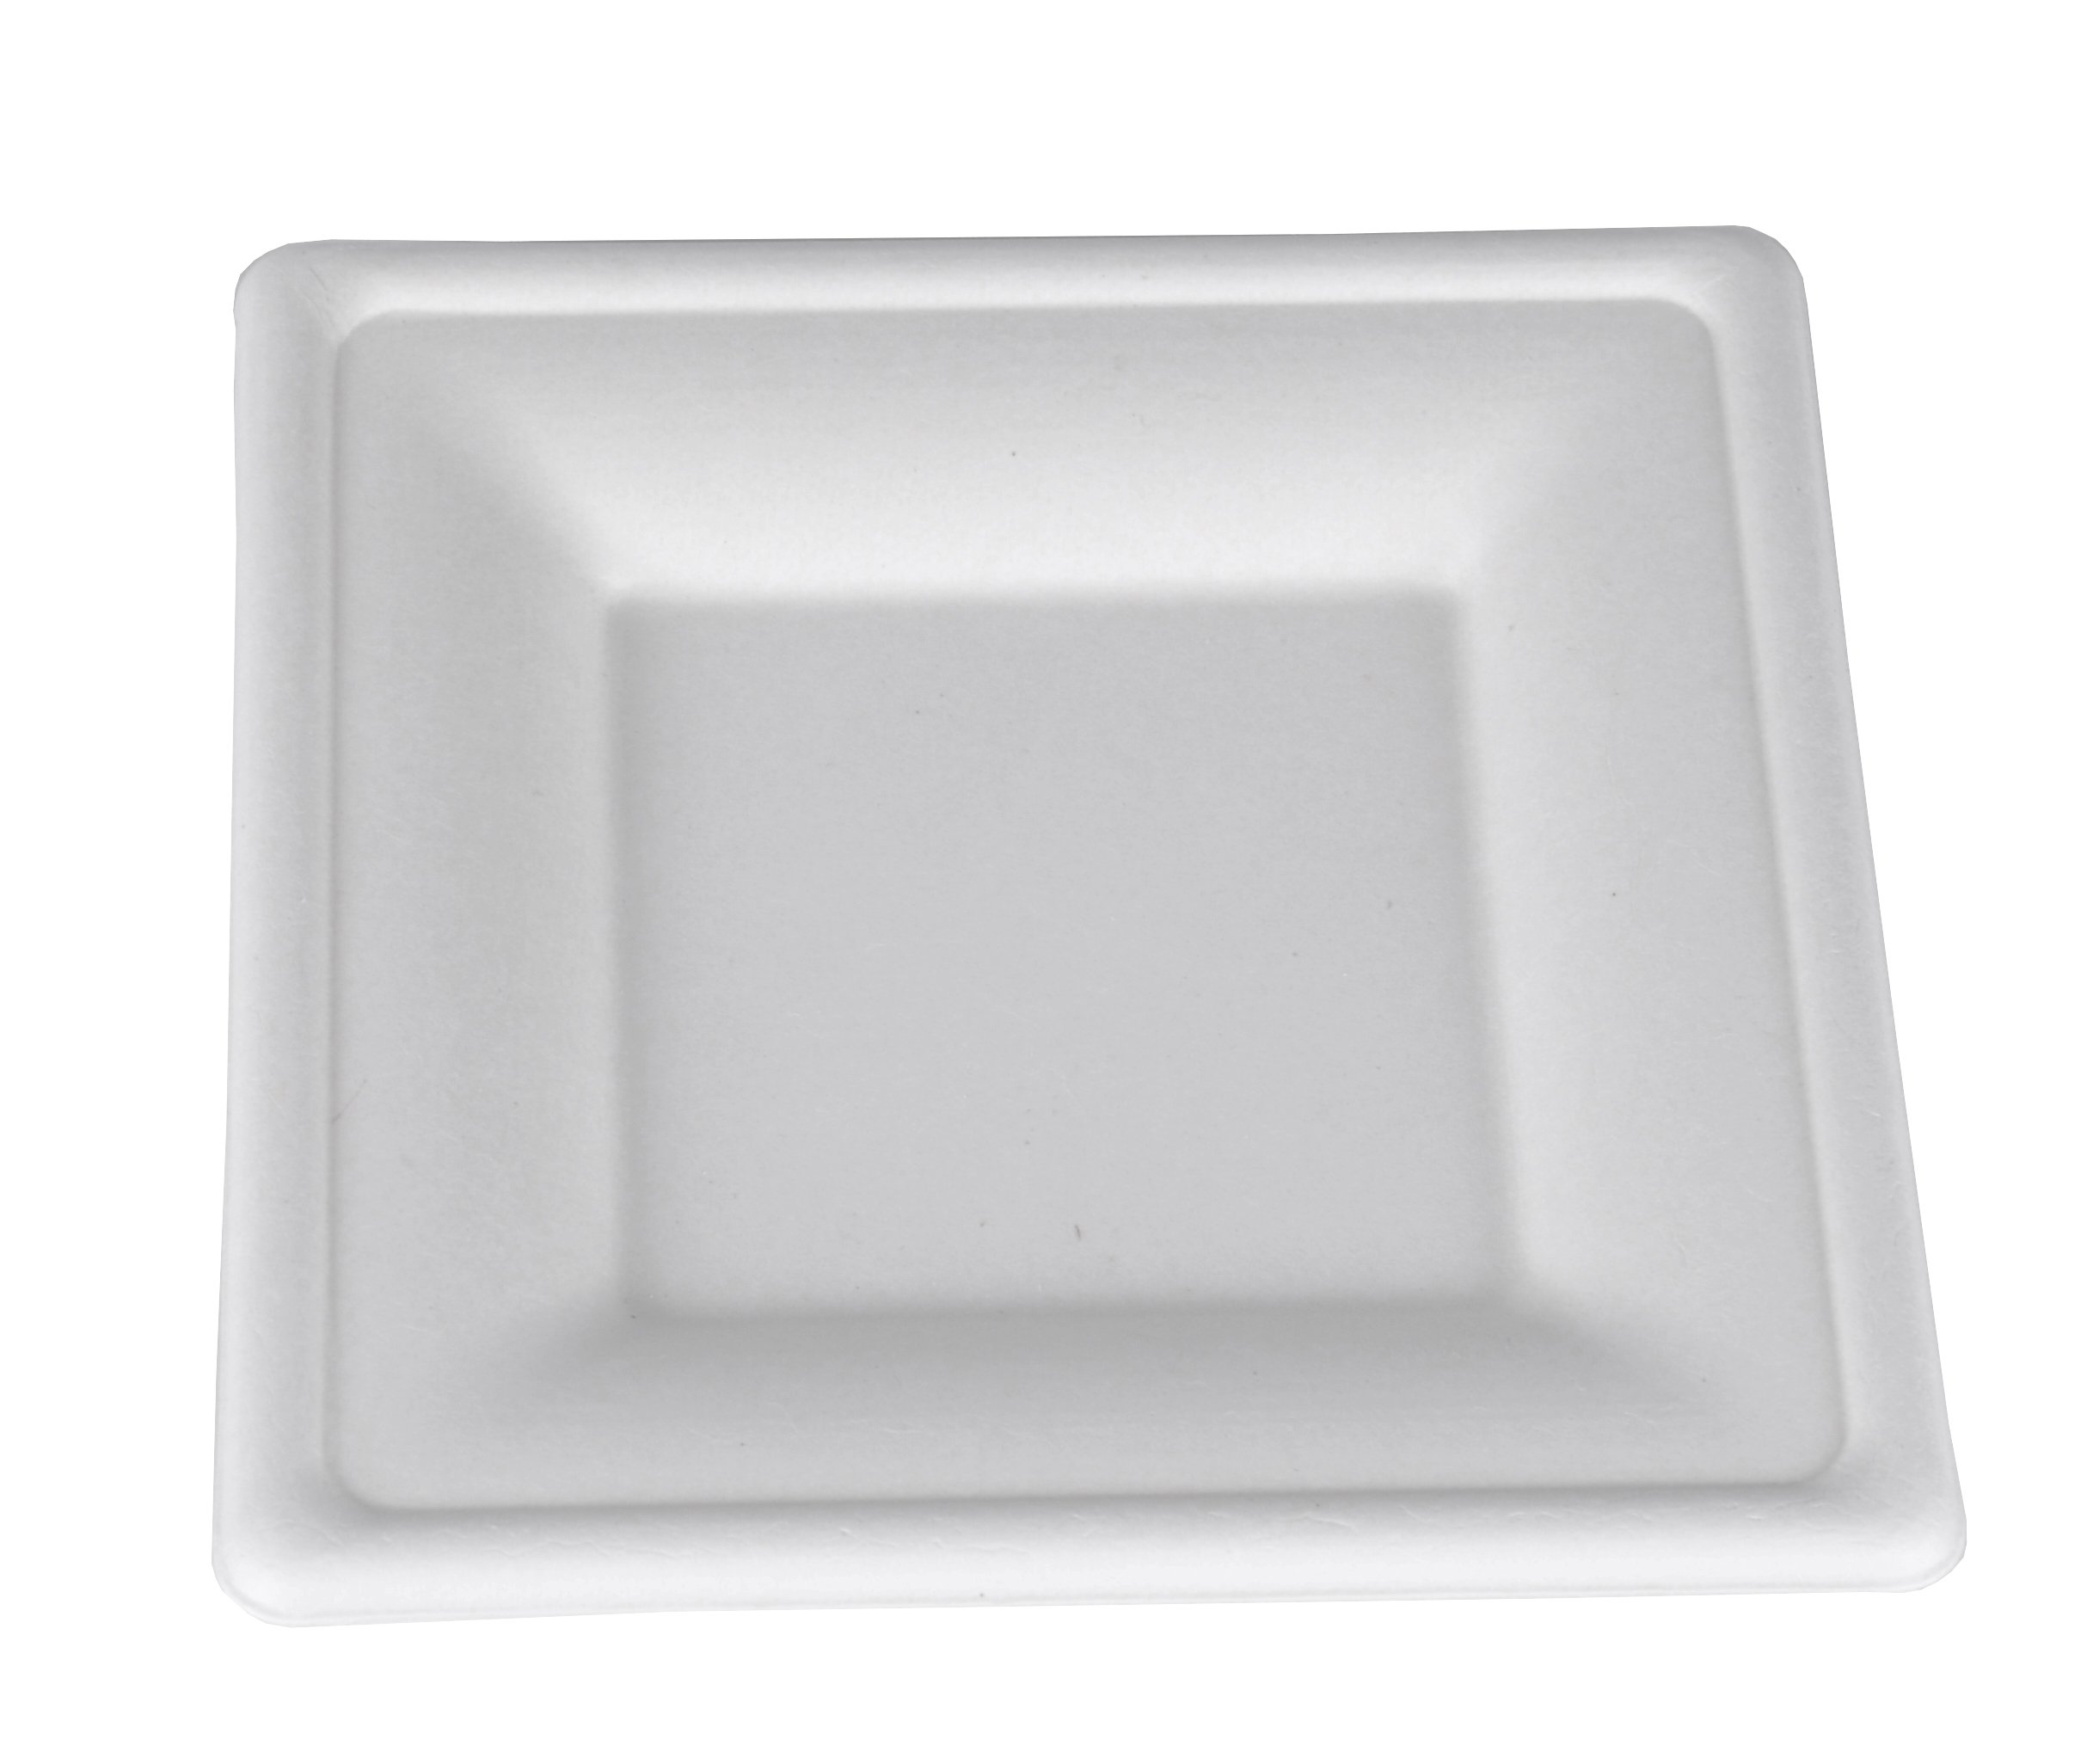 Southern Champion Tray 18620 ChampWare Square White Molded Fiber Heavy Weight Pulp Plate, 6'' L x 6'' W (Case of 500)